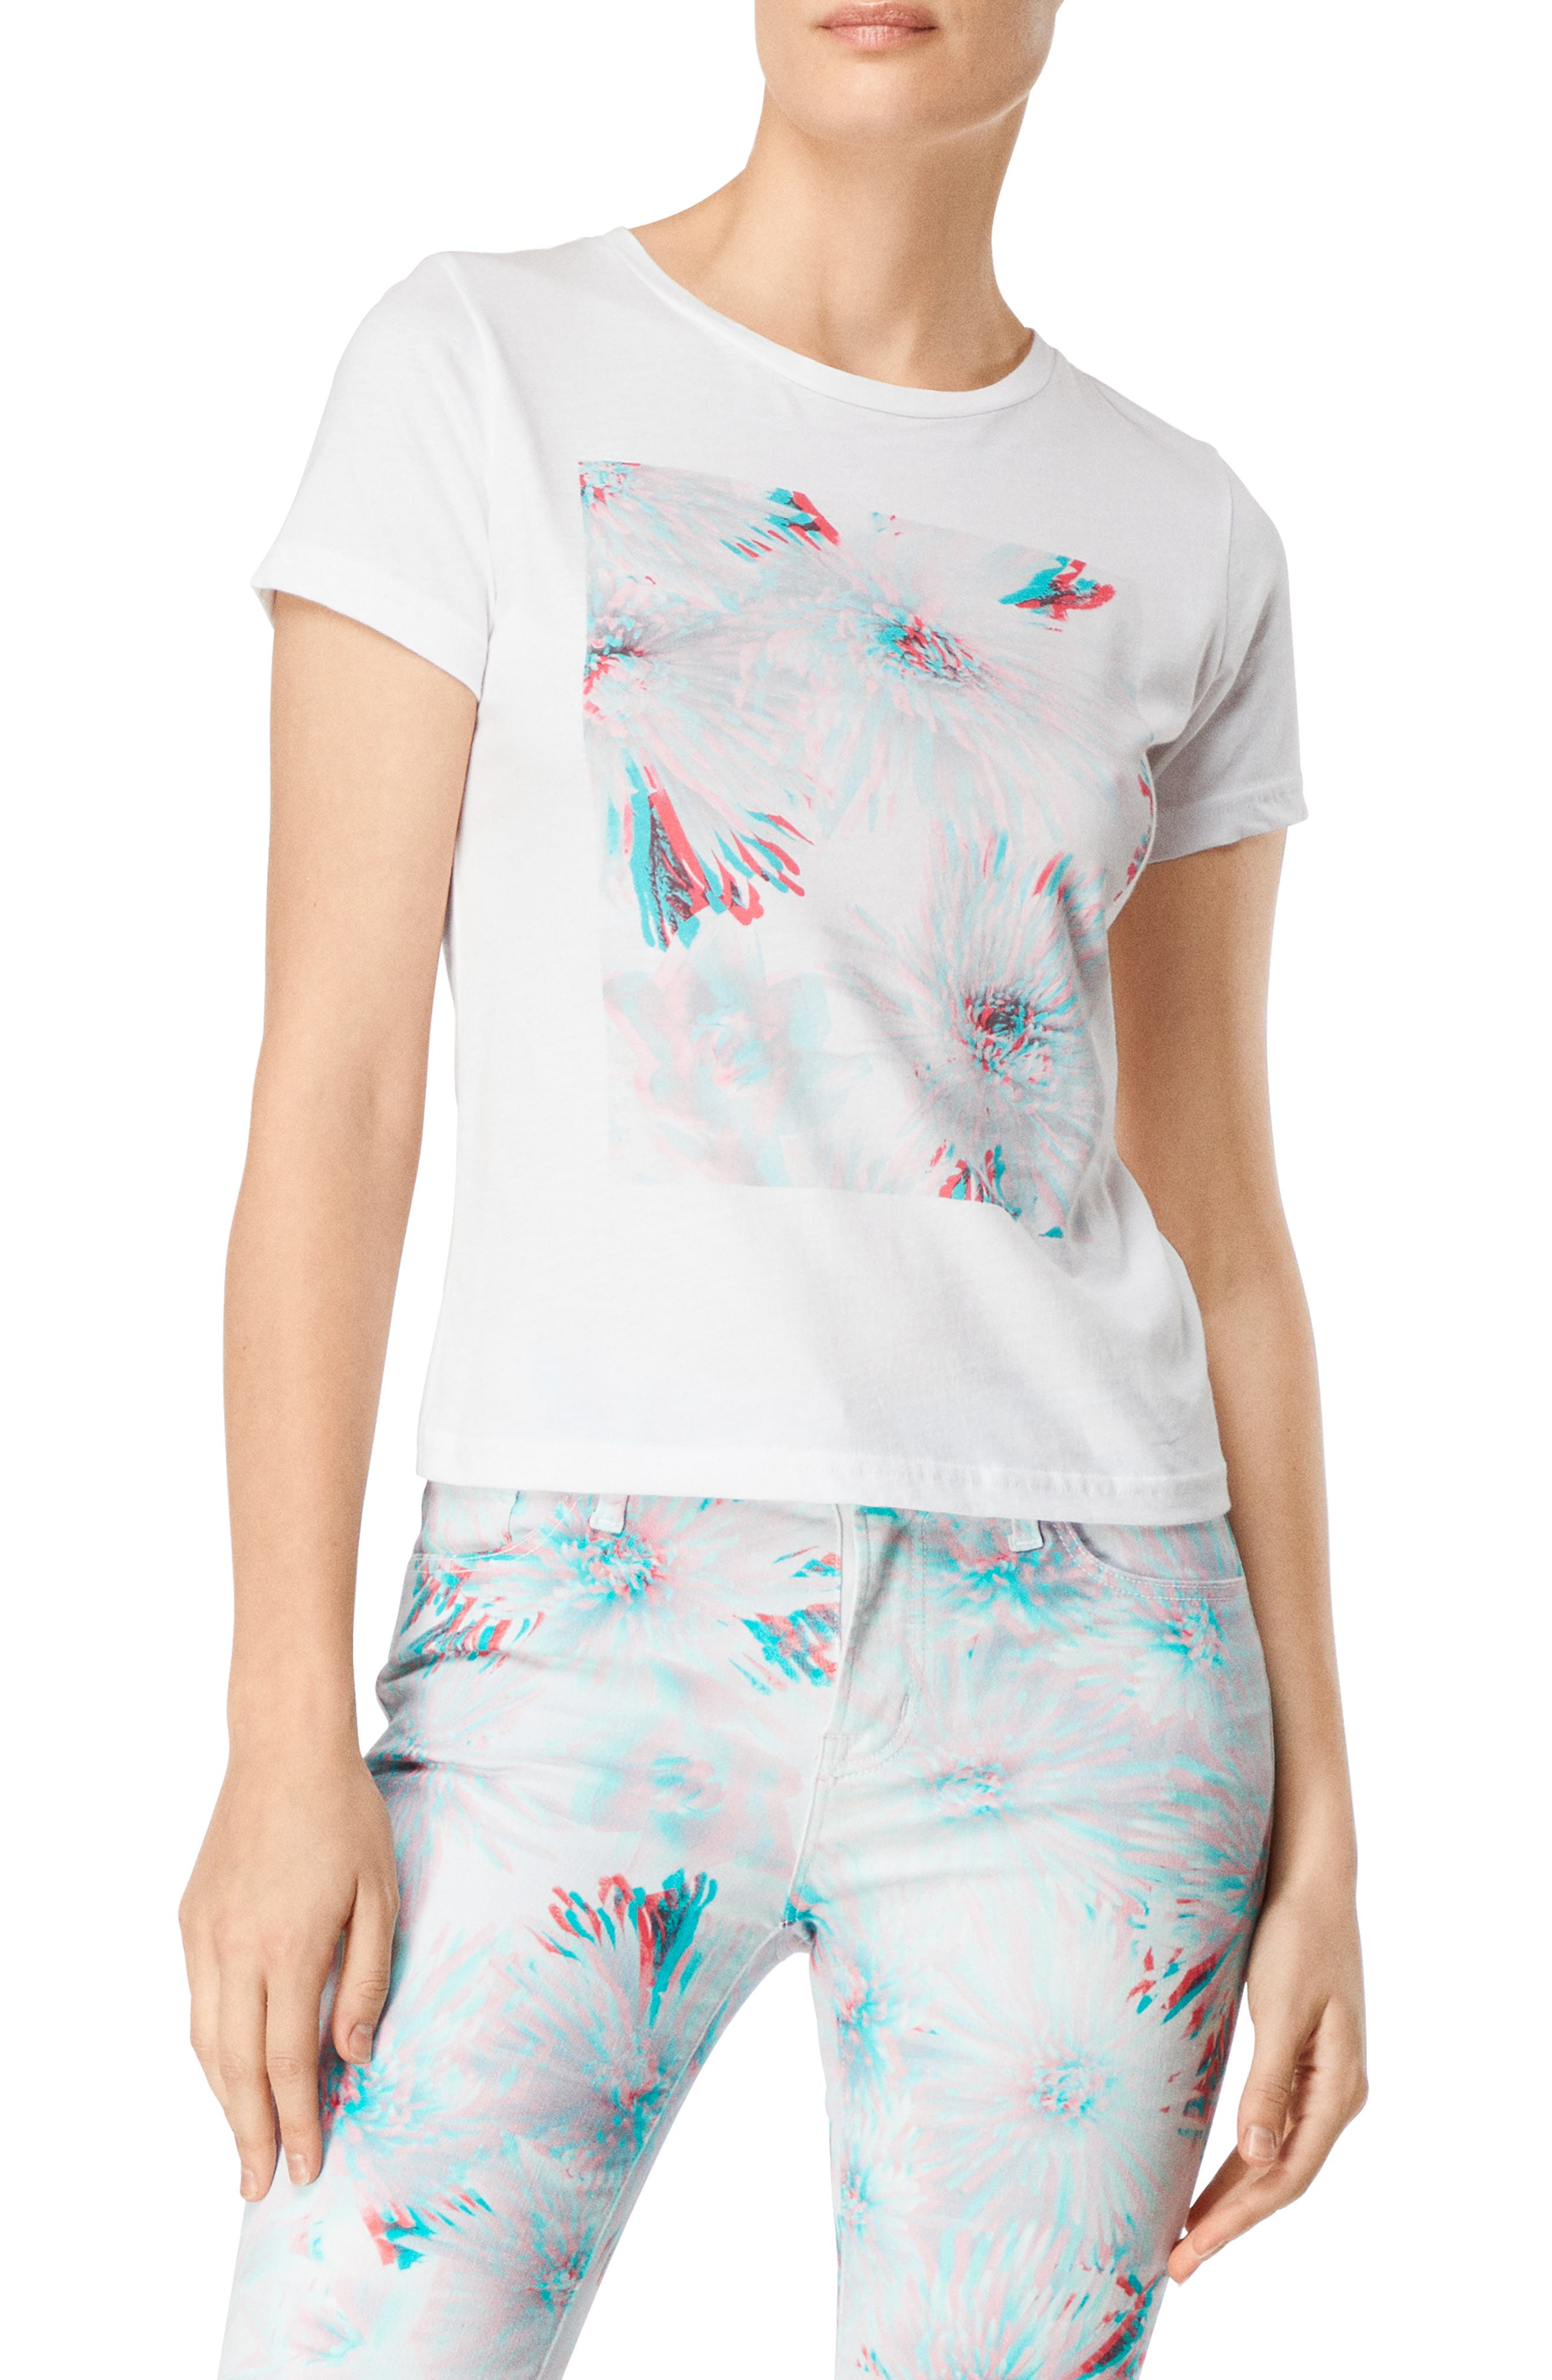 811 Floral 3D Graphic Cotton Tee in 3D Odyssey